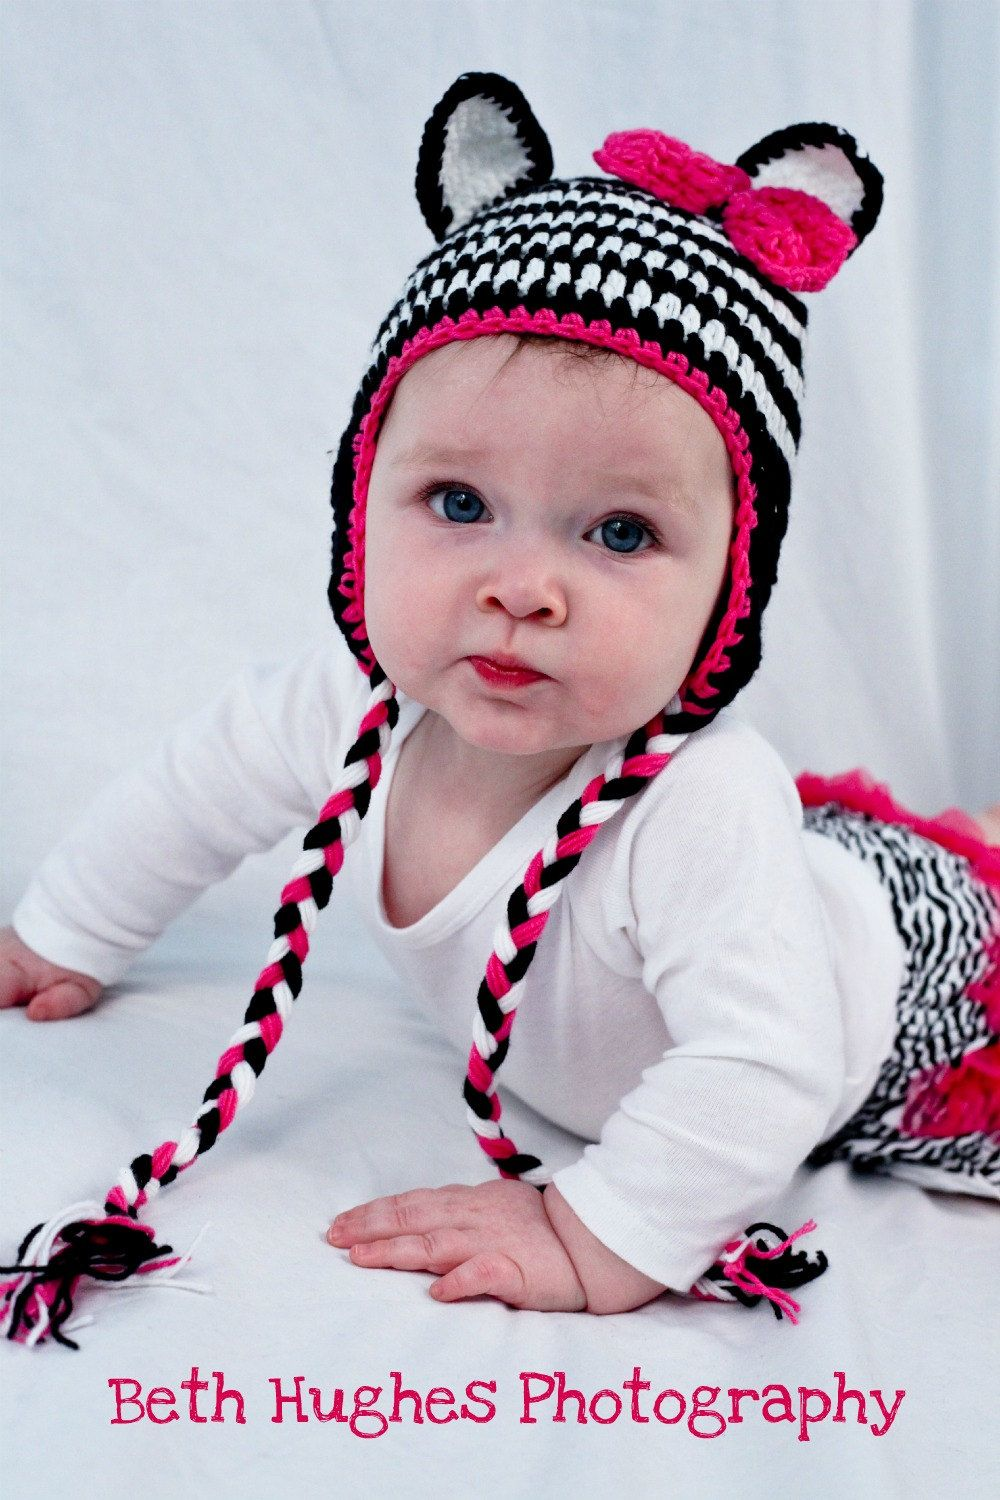 ec6f88d83cb Items similar to Zebra Crochet Earflap Baby Girls Hat With Earflaps Braid  Tassels Pink Bow on Etsy